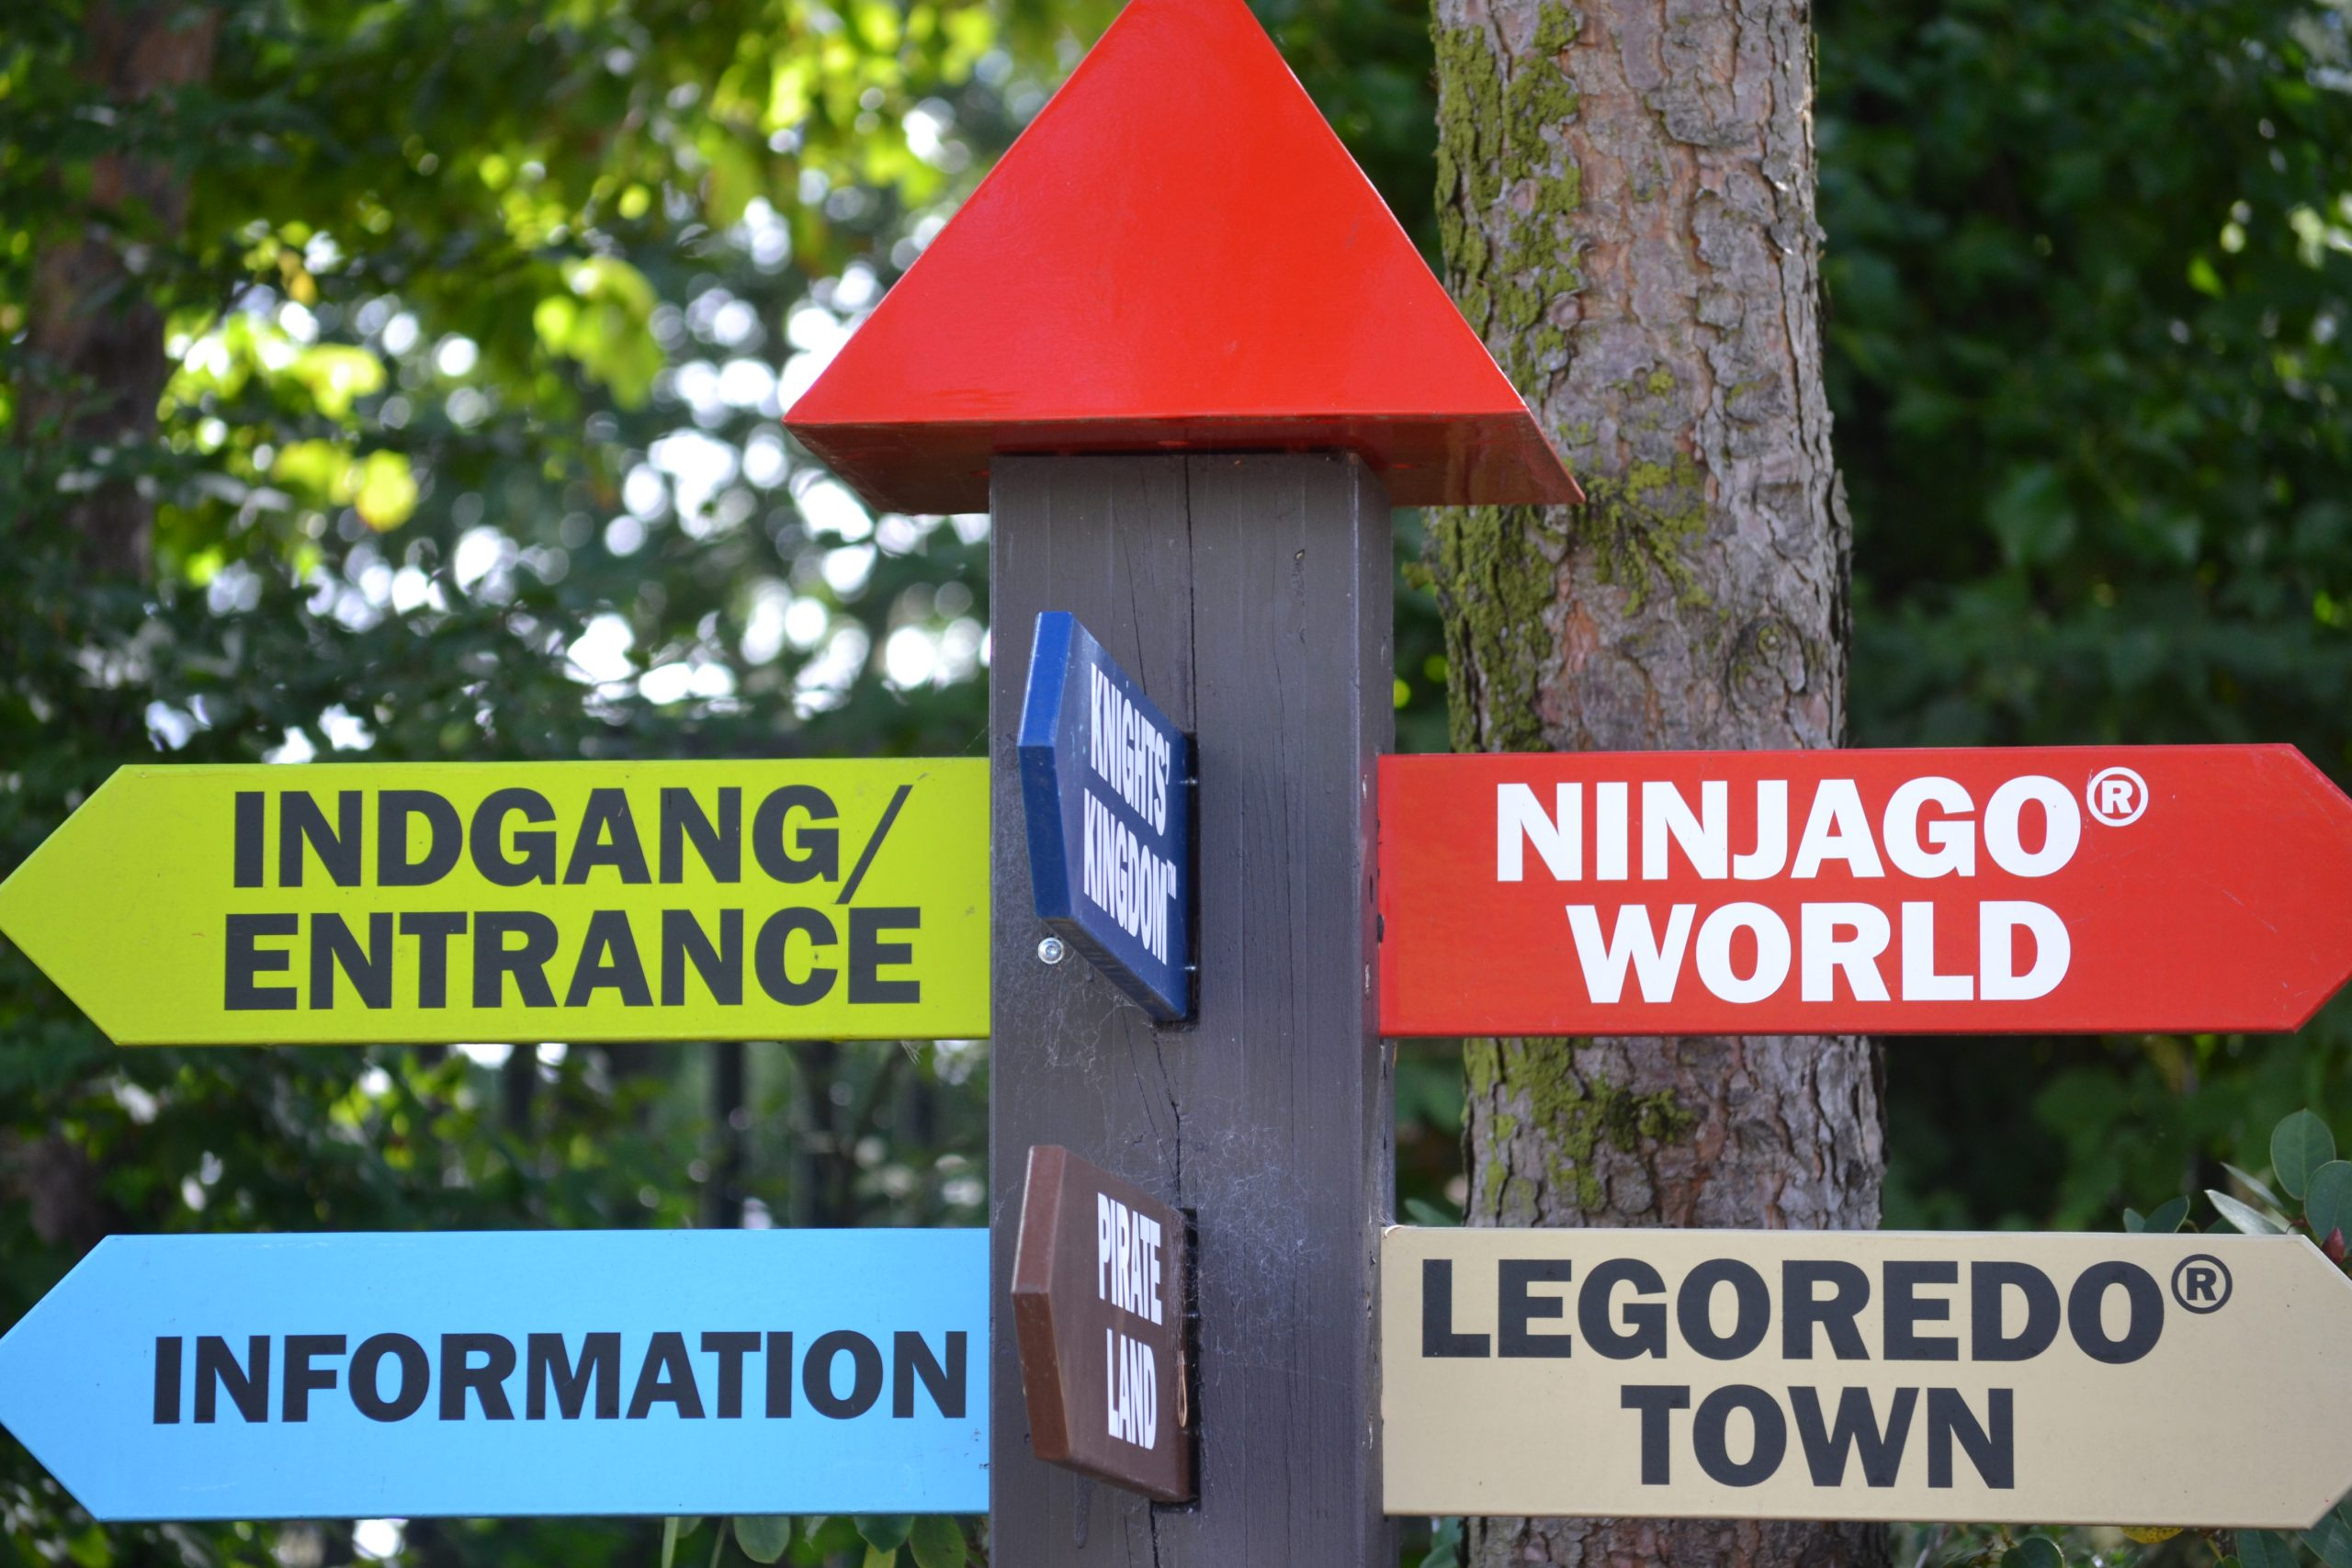 10 Top Must Visit Spots in Legoland For Kids